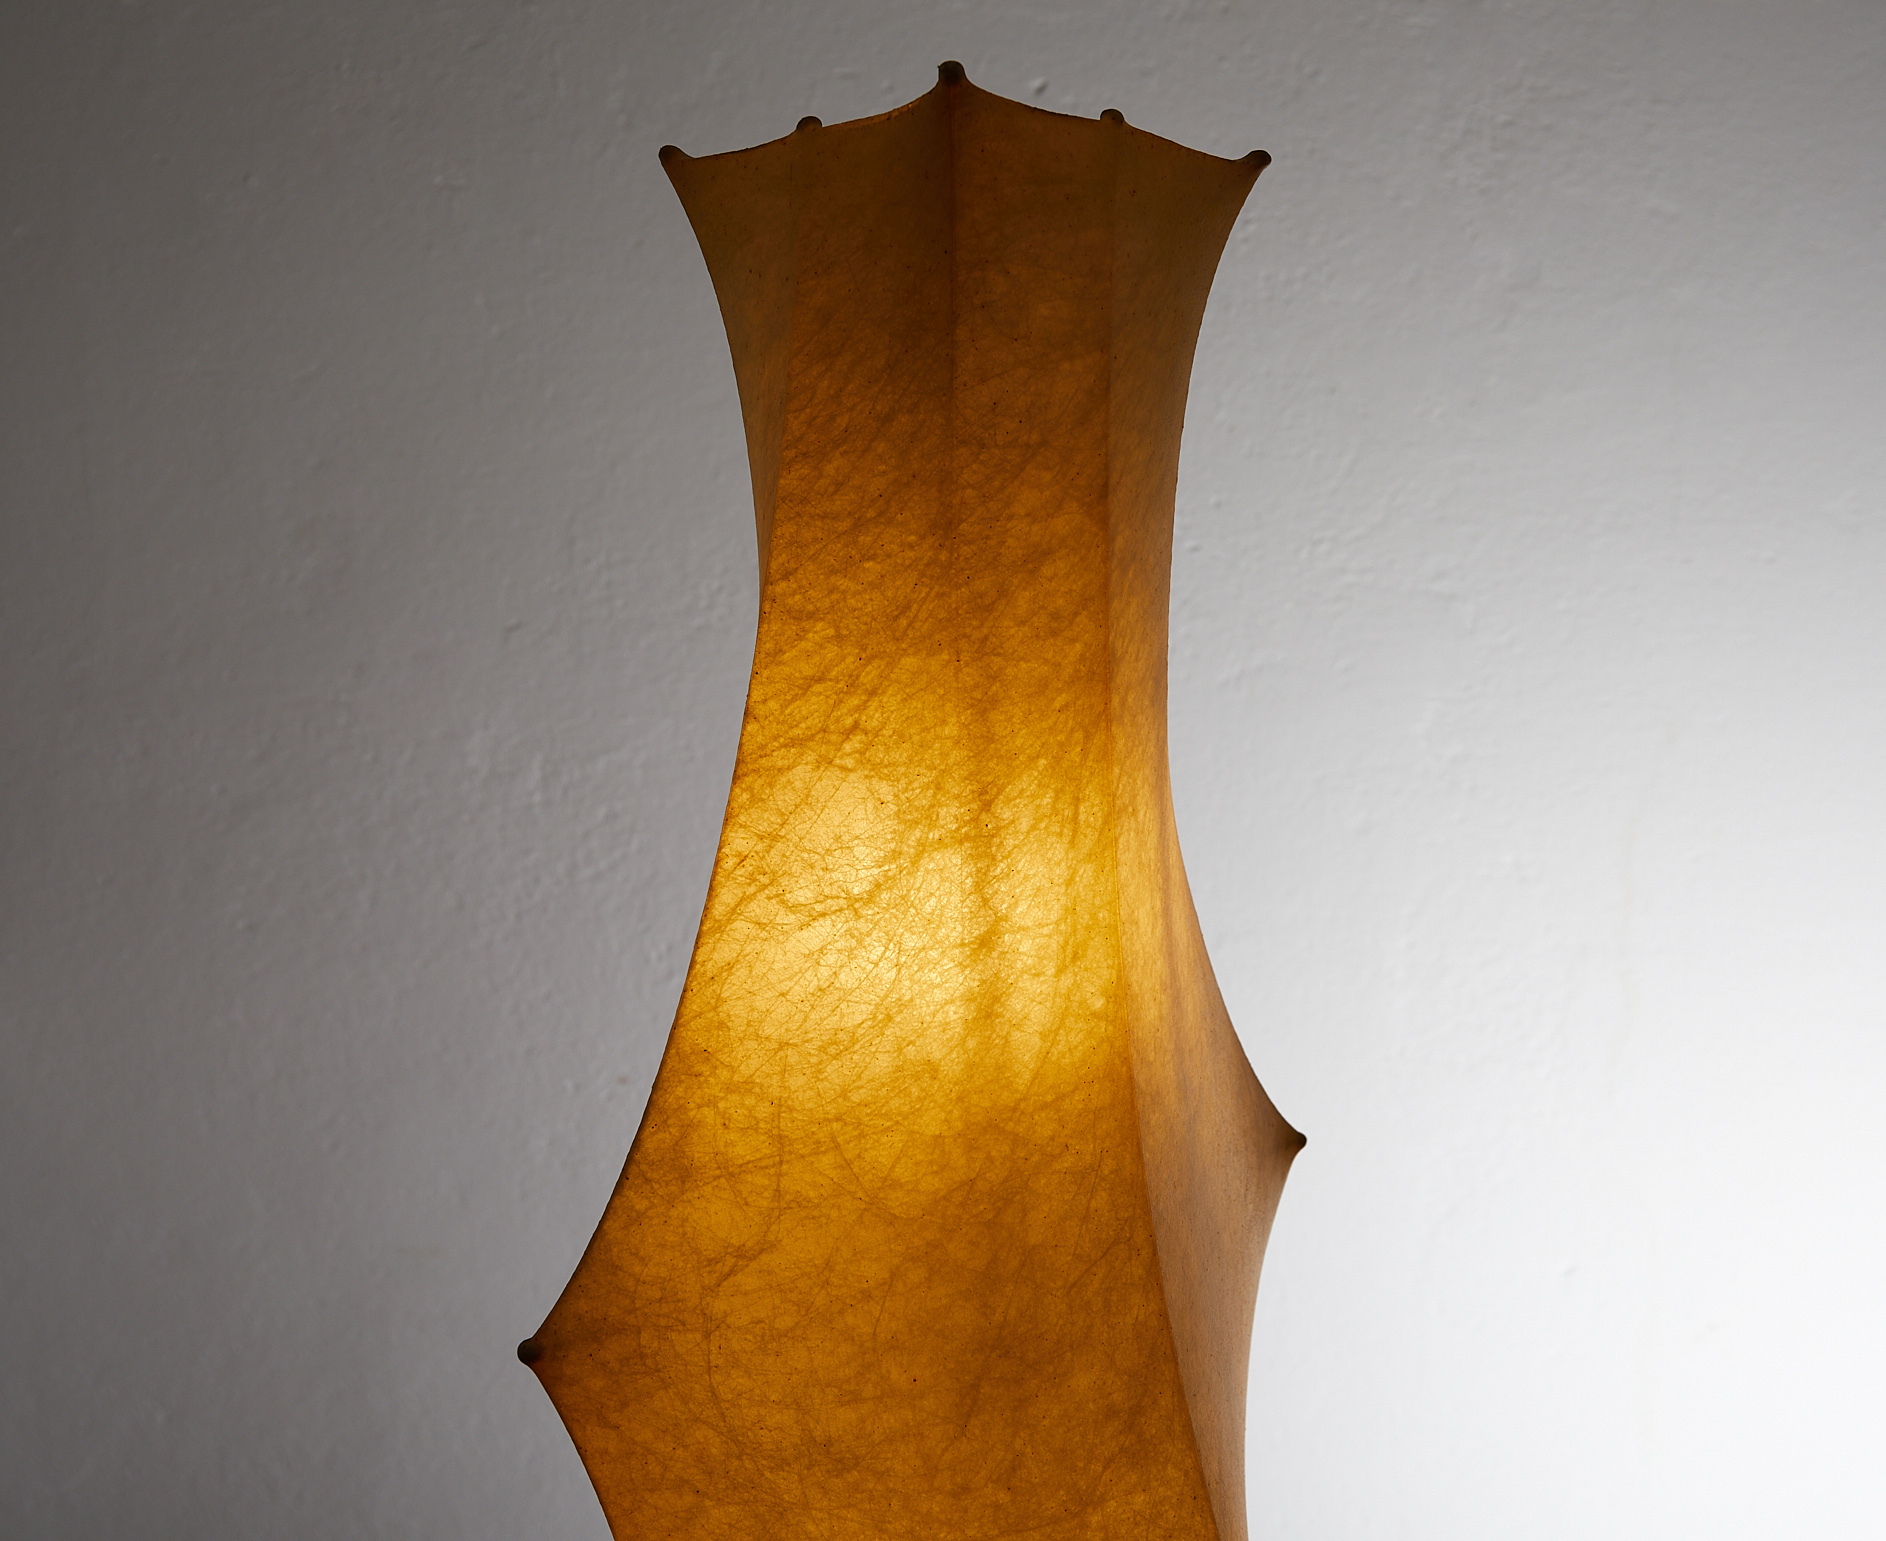 fantasma-piccolo-resin-cocoon-floor-lamp-by-tobia-scarpa-for-flos-1963-image-08